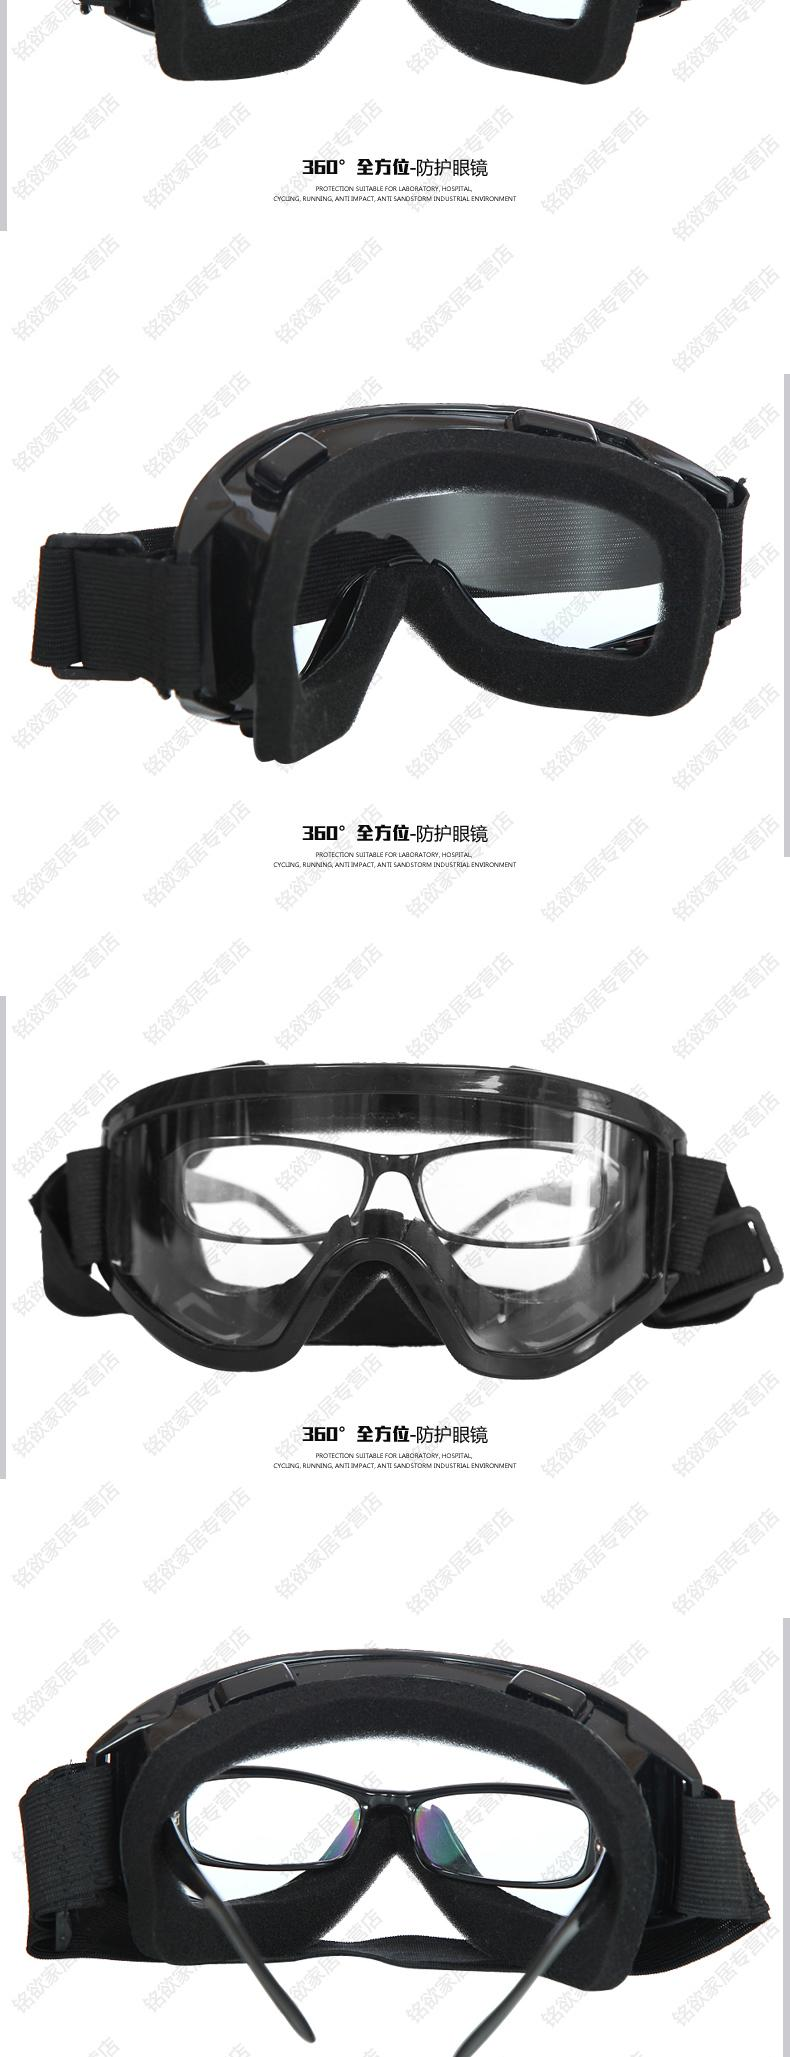 Hot Workplace Safety Supplies Eyes Protection Clear Protective Glasses Wind and Dust Anti-fog Lab Medical Use Safety Goggles 9